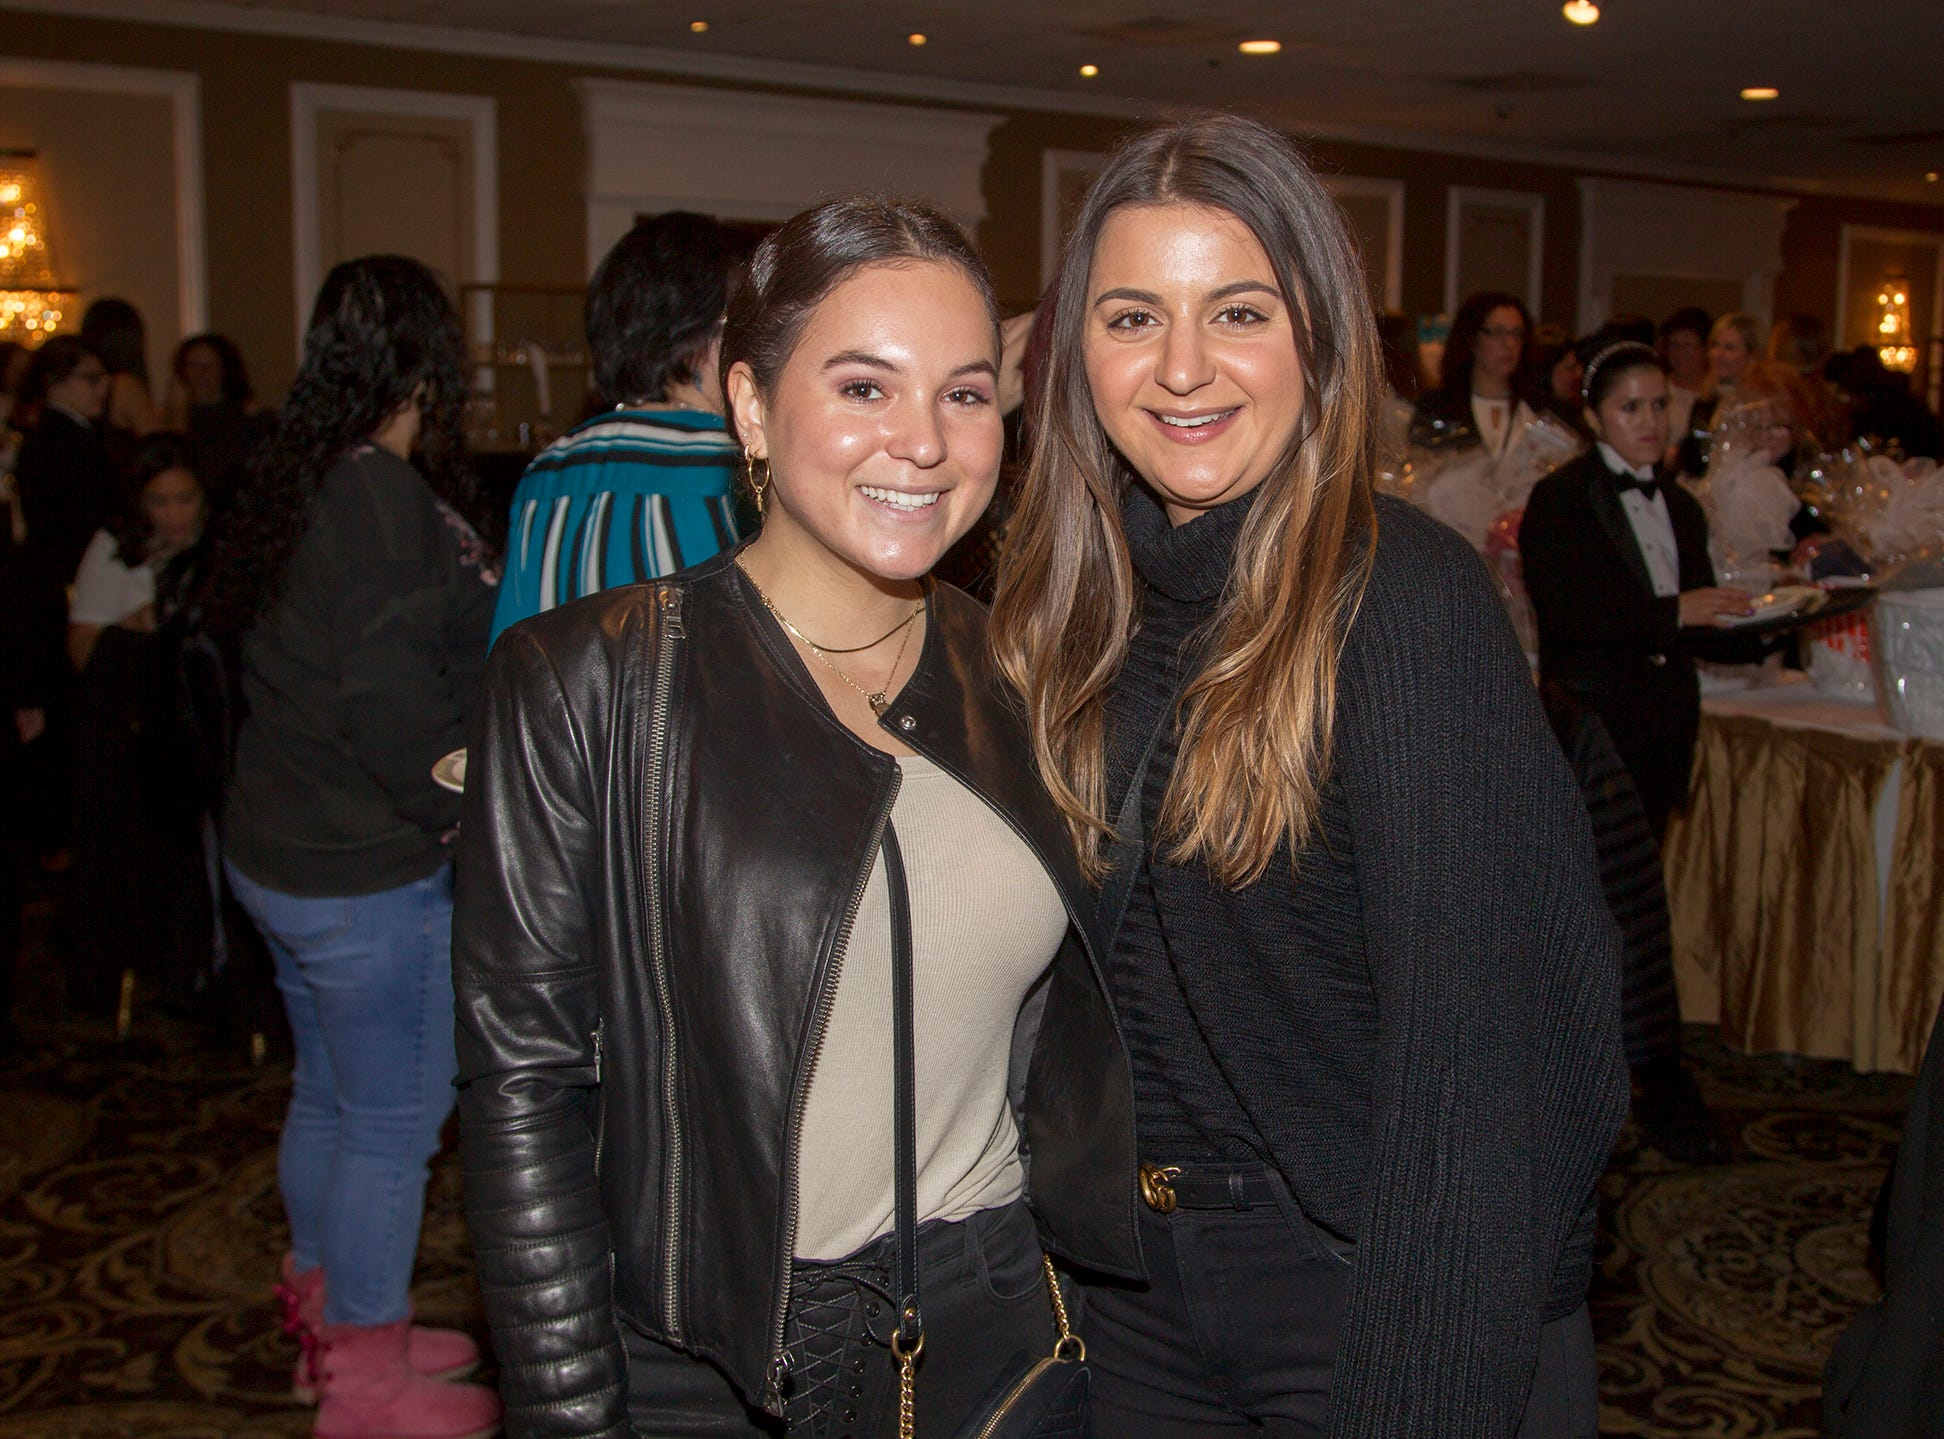 Christina Kourdelis, Calli Carfello. Immaculate Heart Academy held its annual Fashion Show fundraiser at Florentine Gardens in River Vale. 12/02/2018